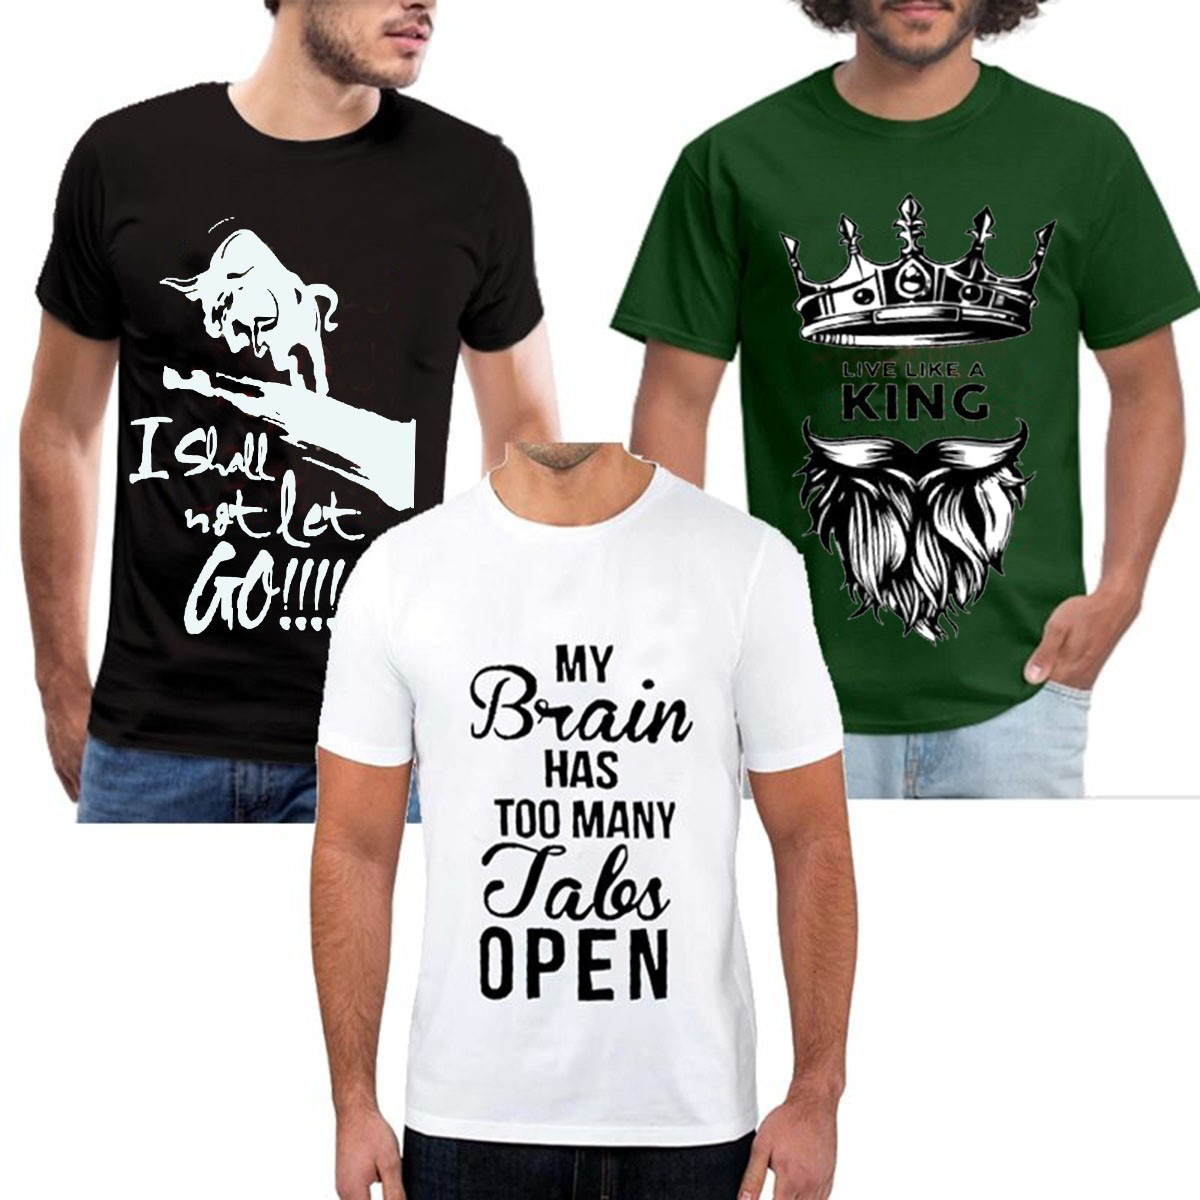 Pack Of 3 Half Sleeves Printed T-shirts For Men